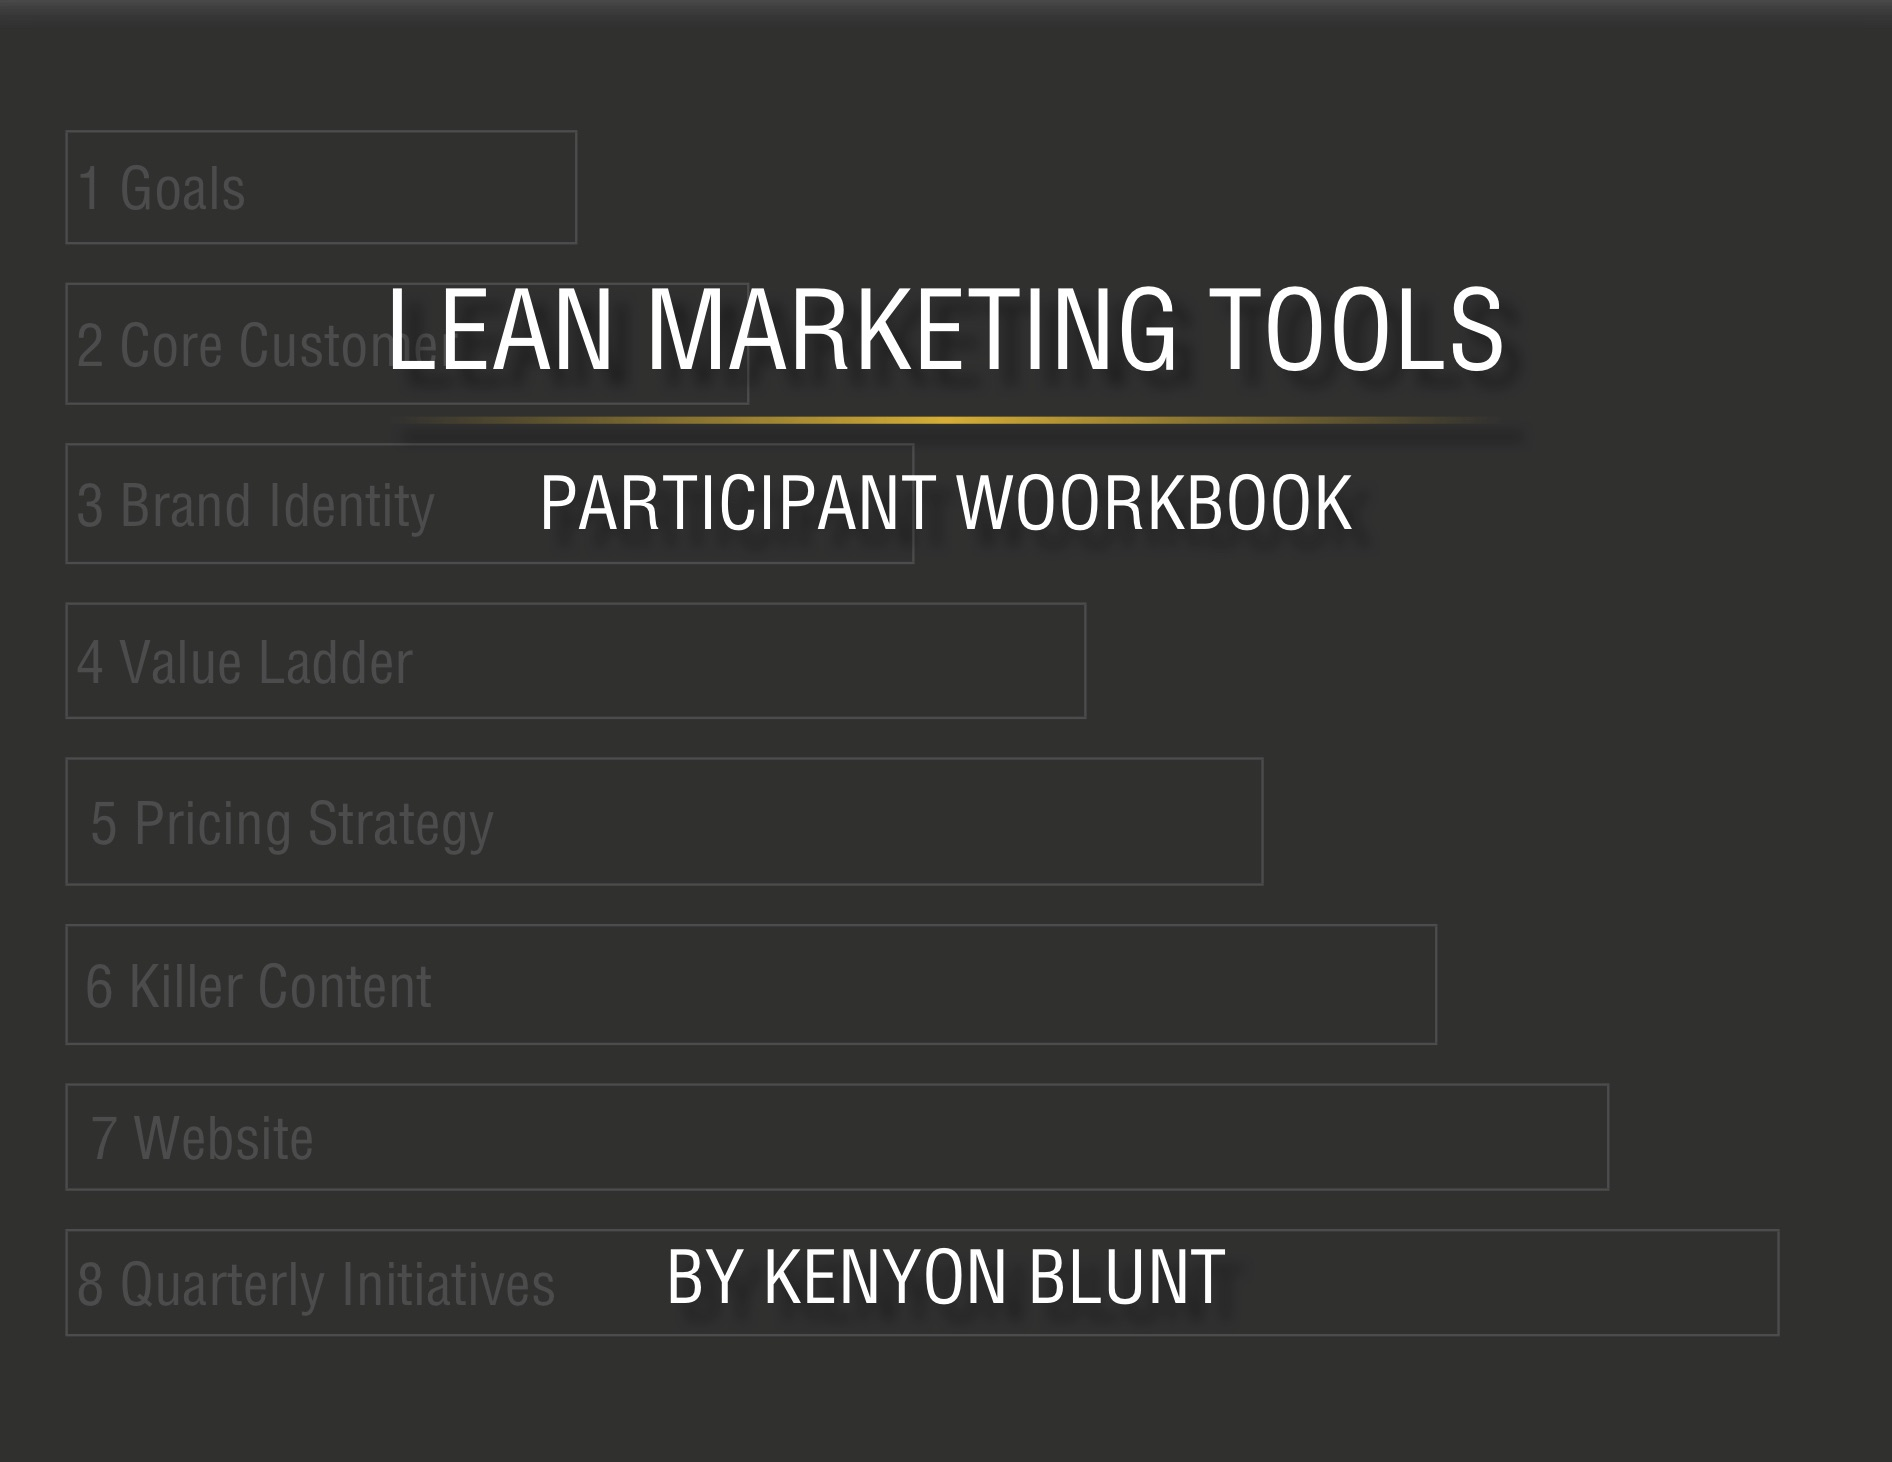 The book cover of The Lean Marketing Tools Participant Workbook by Kenyon Blunt.